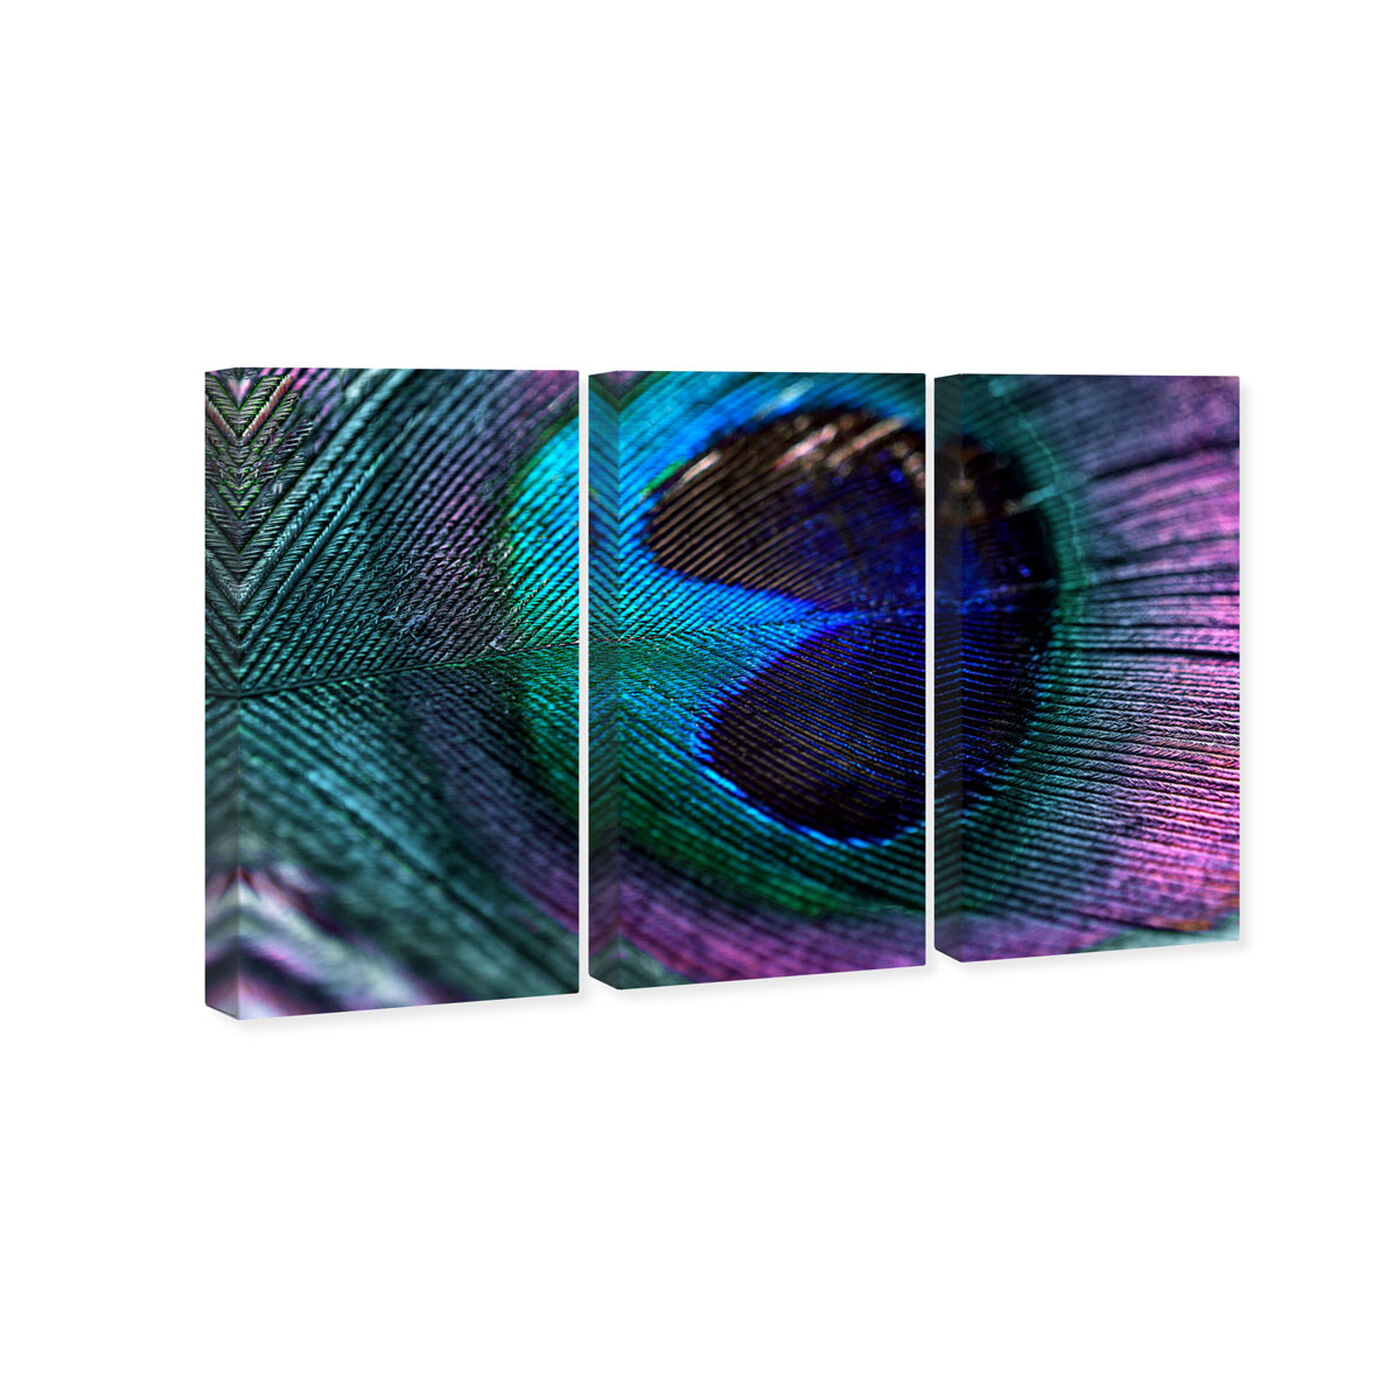 Royal Peacock Feather Triptych 51x34x3